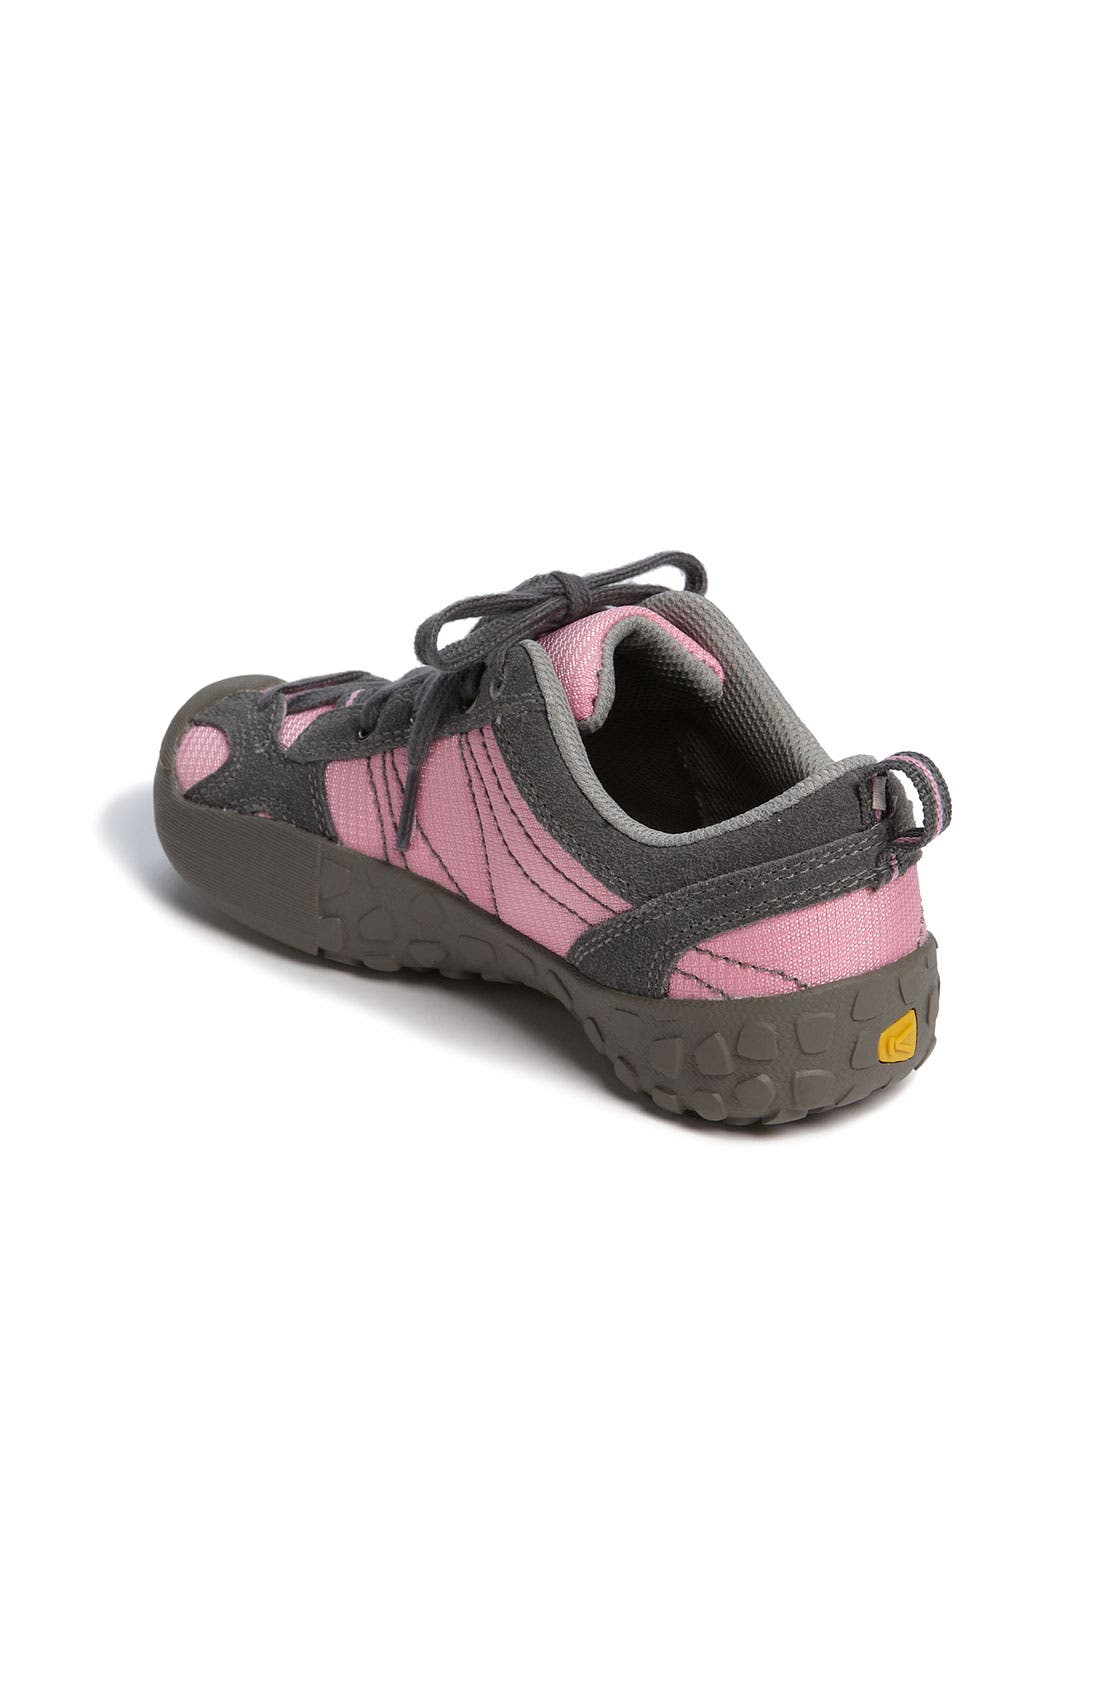 Alternate Image 2  - Keen 'Ambler' Trail Shoe (Toddler, Little Kid & Big Kid)